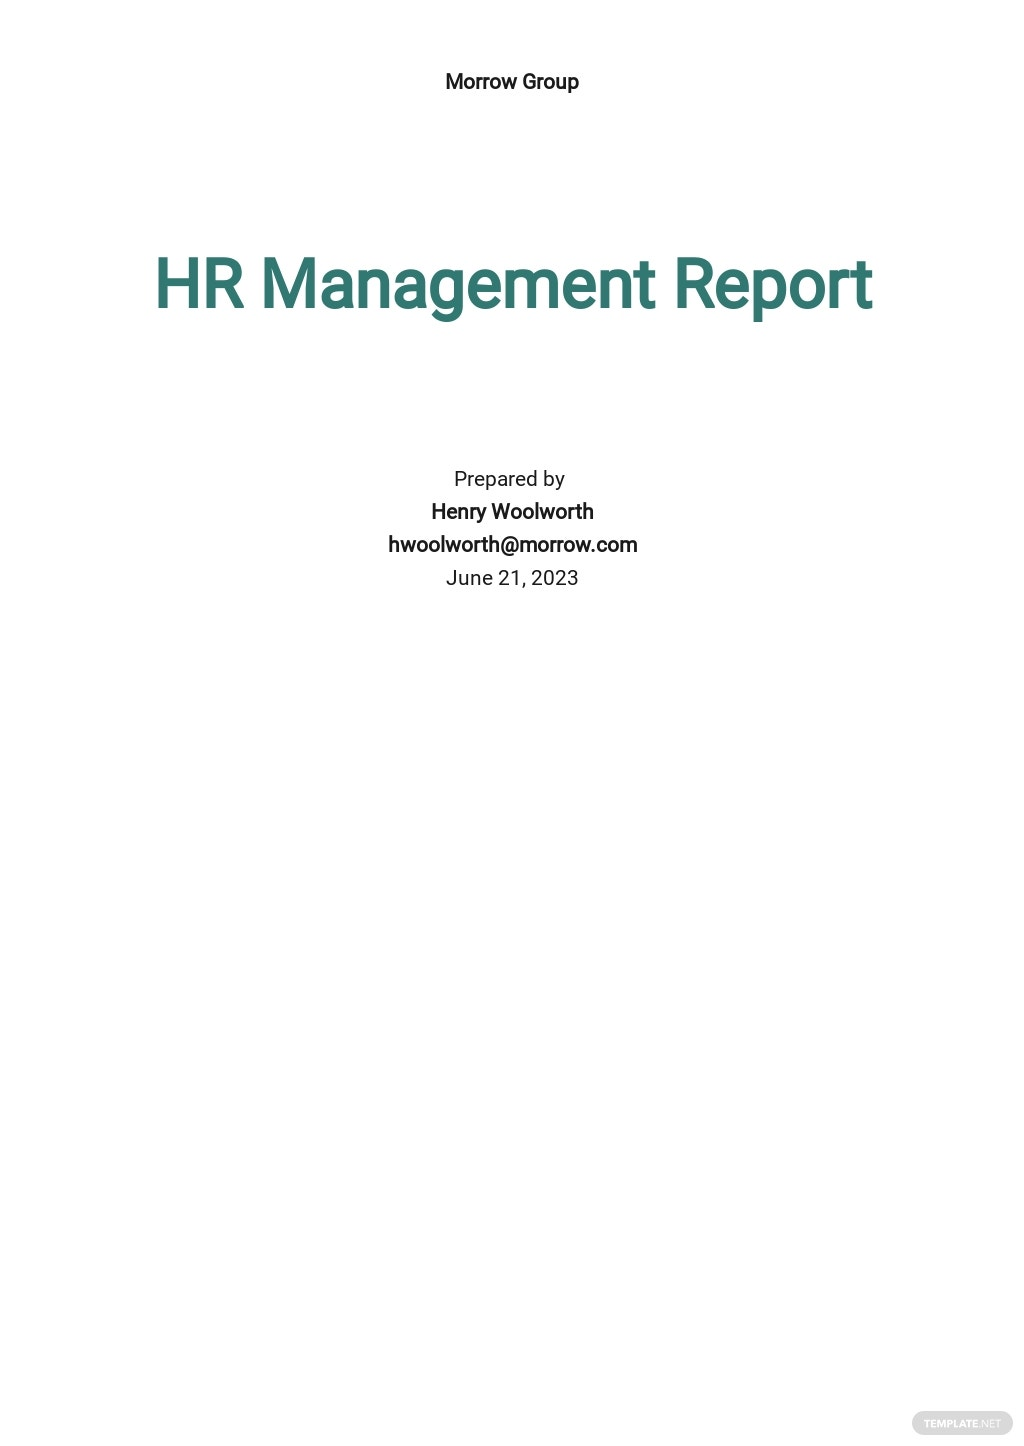 HR Management Report Template